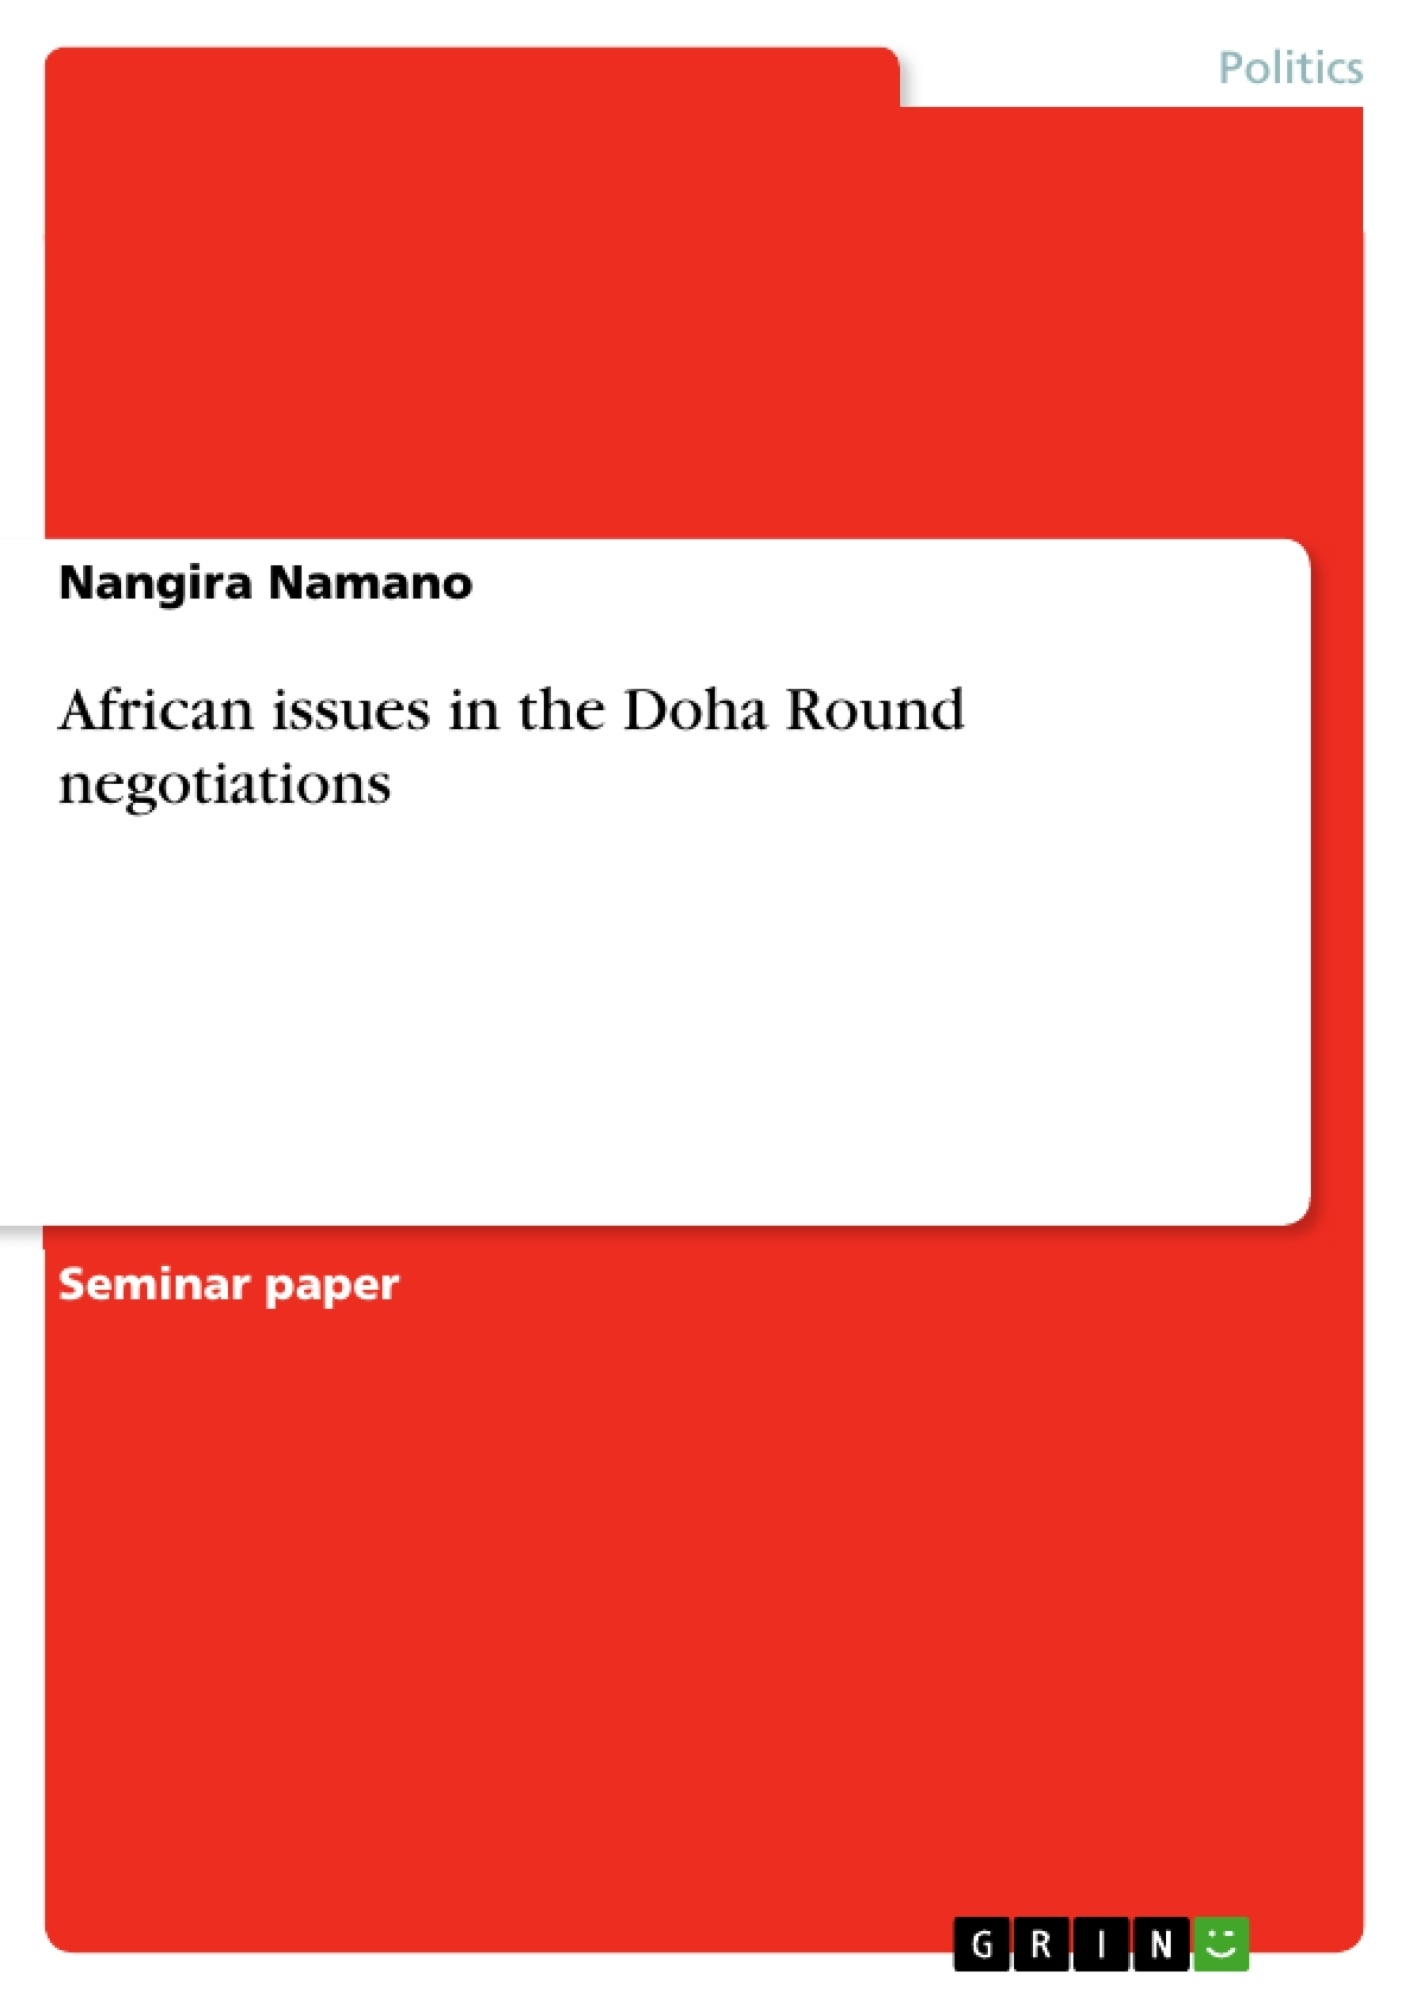 Title: African issues in the Doha Round negotiations